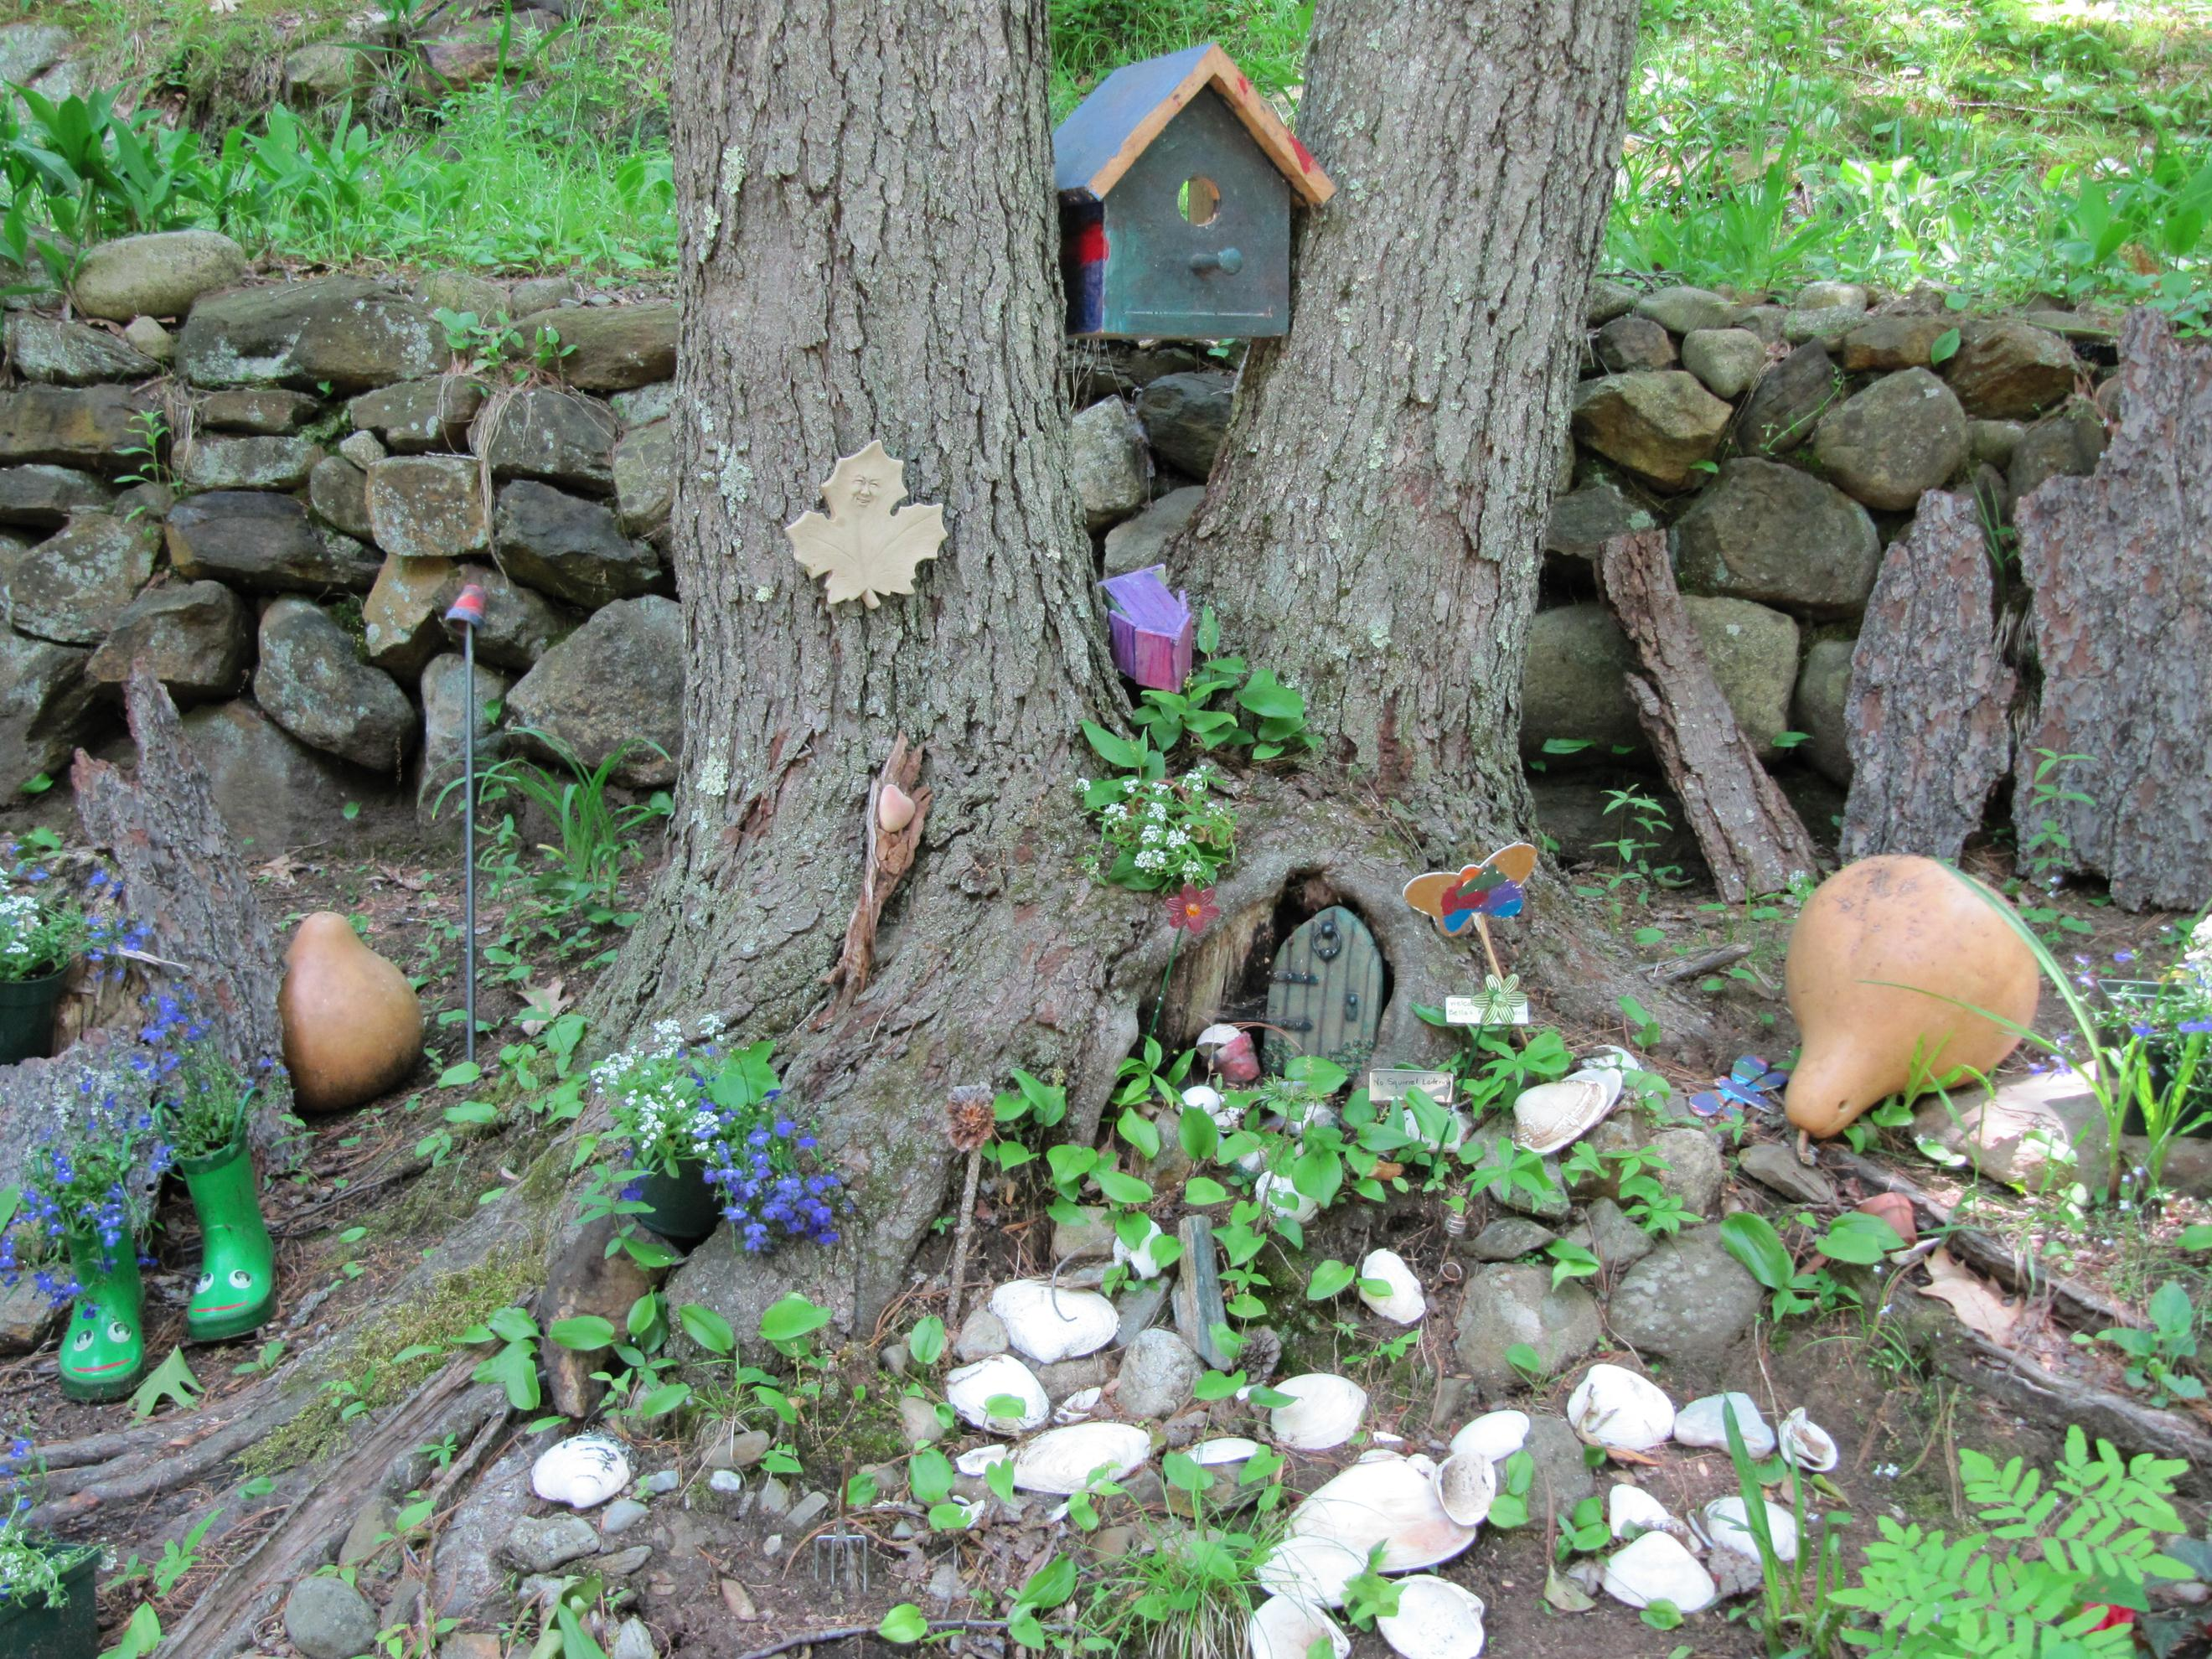 Natural fairy garden ideas 9973166 - ilug-cal.info